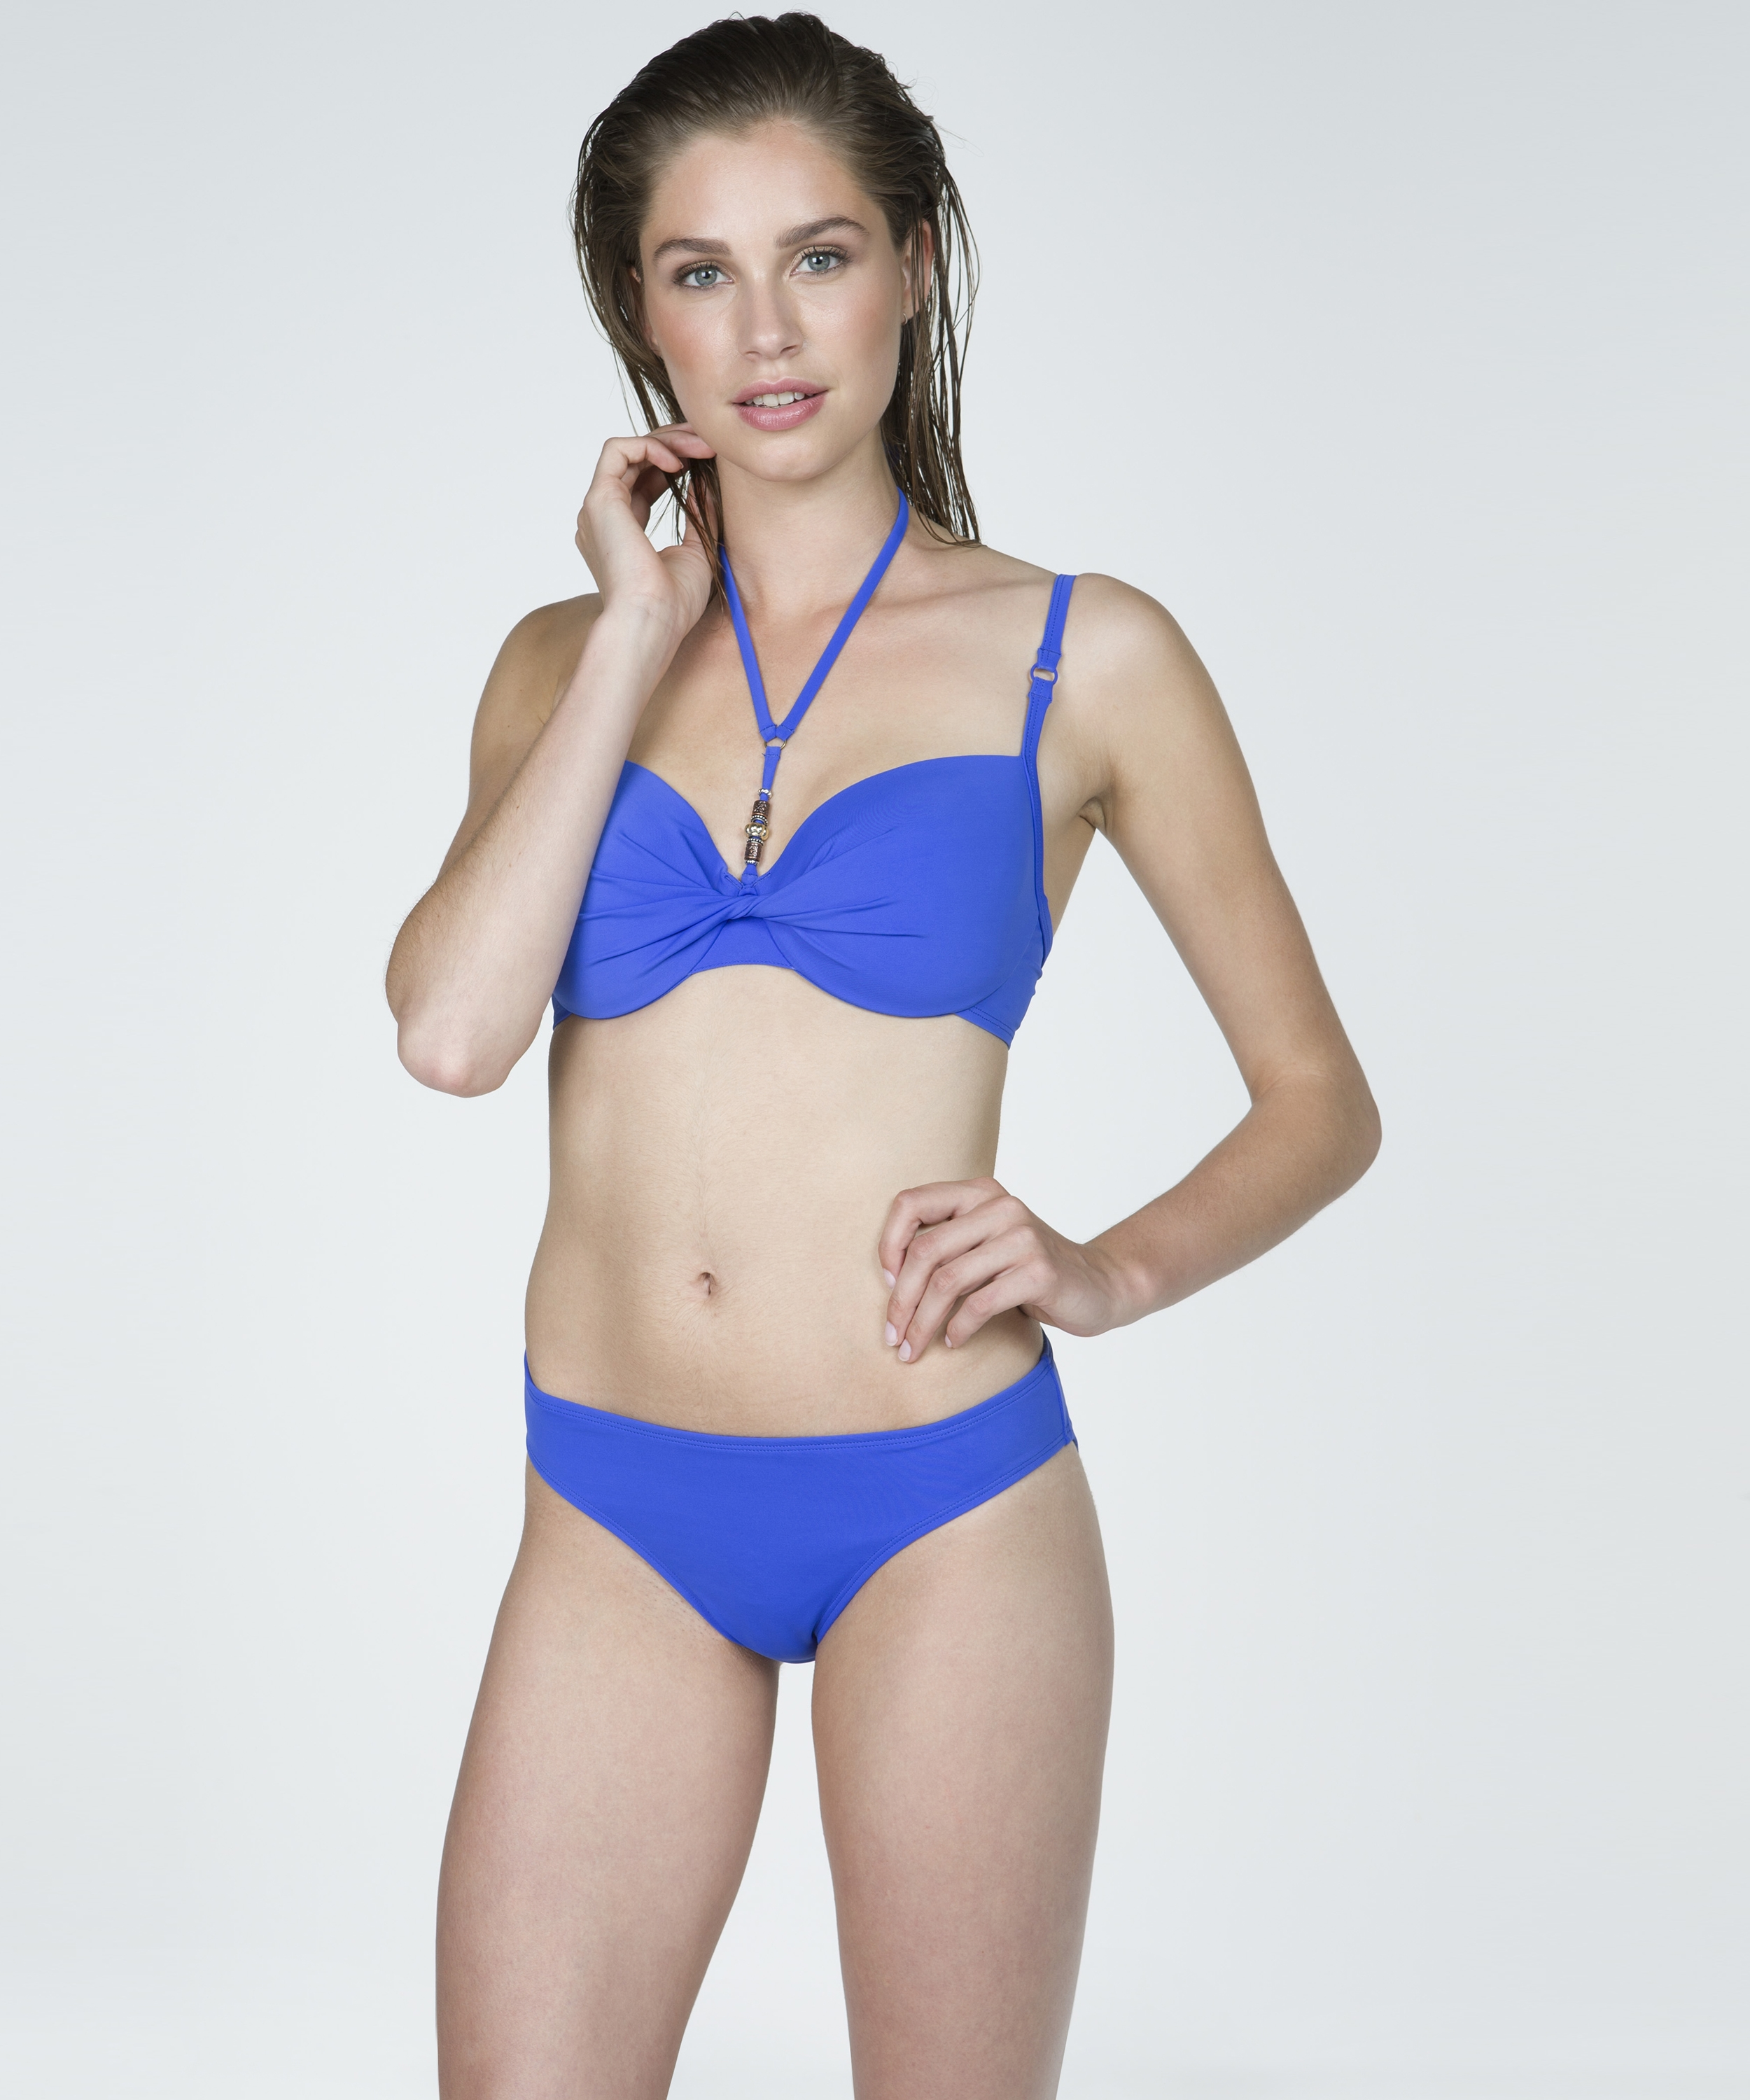 Vorgeformtes Bikini-Top Necklace Wave, Blau, main